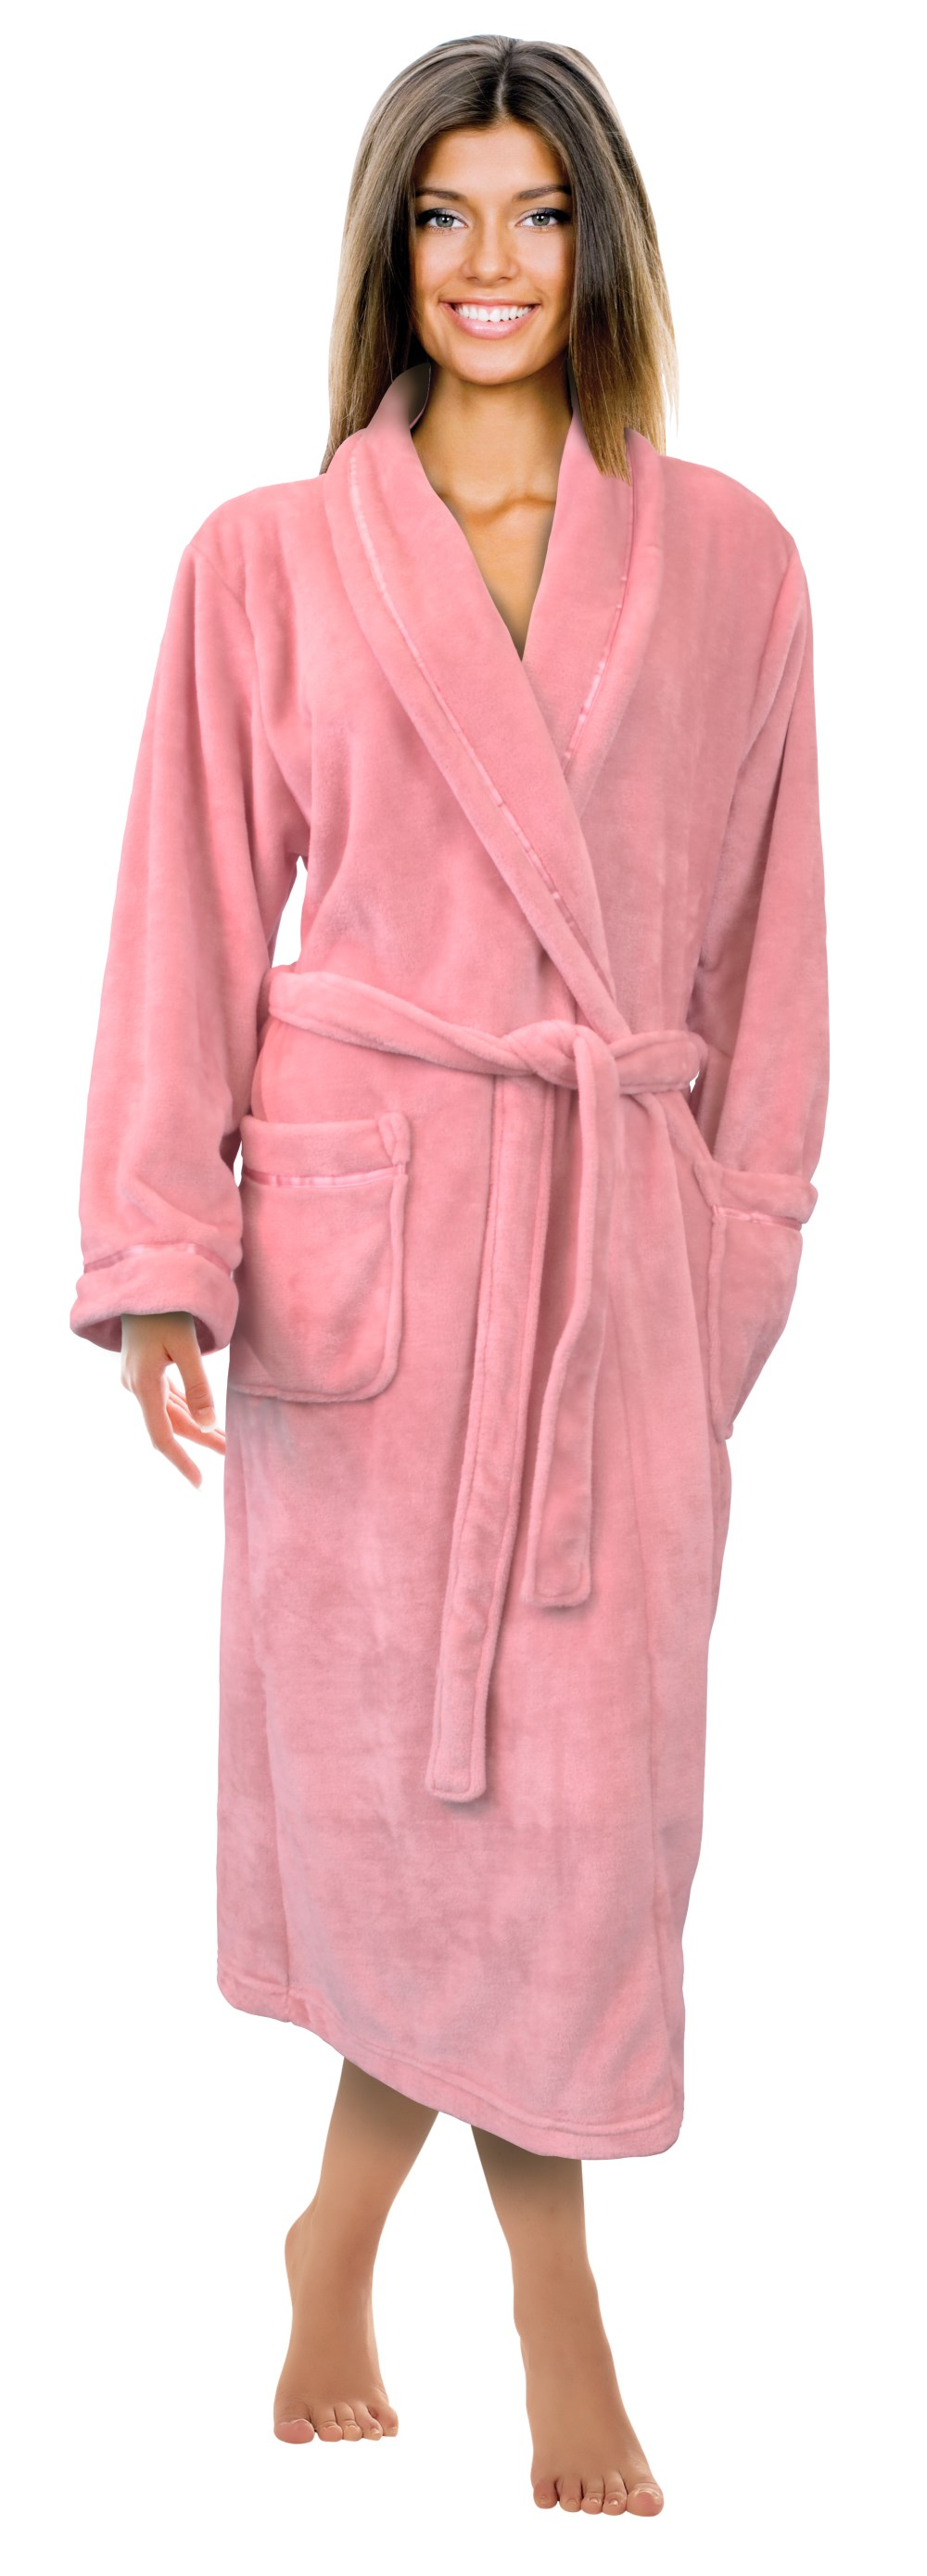 Shop our selection of women's robes. We have 8 individual sizes from XXS to 3XL - all designed to provide the perfect fit. And with free 2-day shipping and day hassle-free returns, we think you will find the perfect robe here.